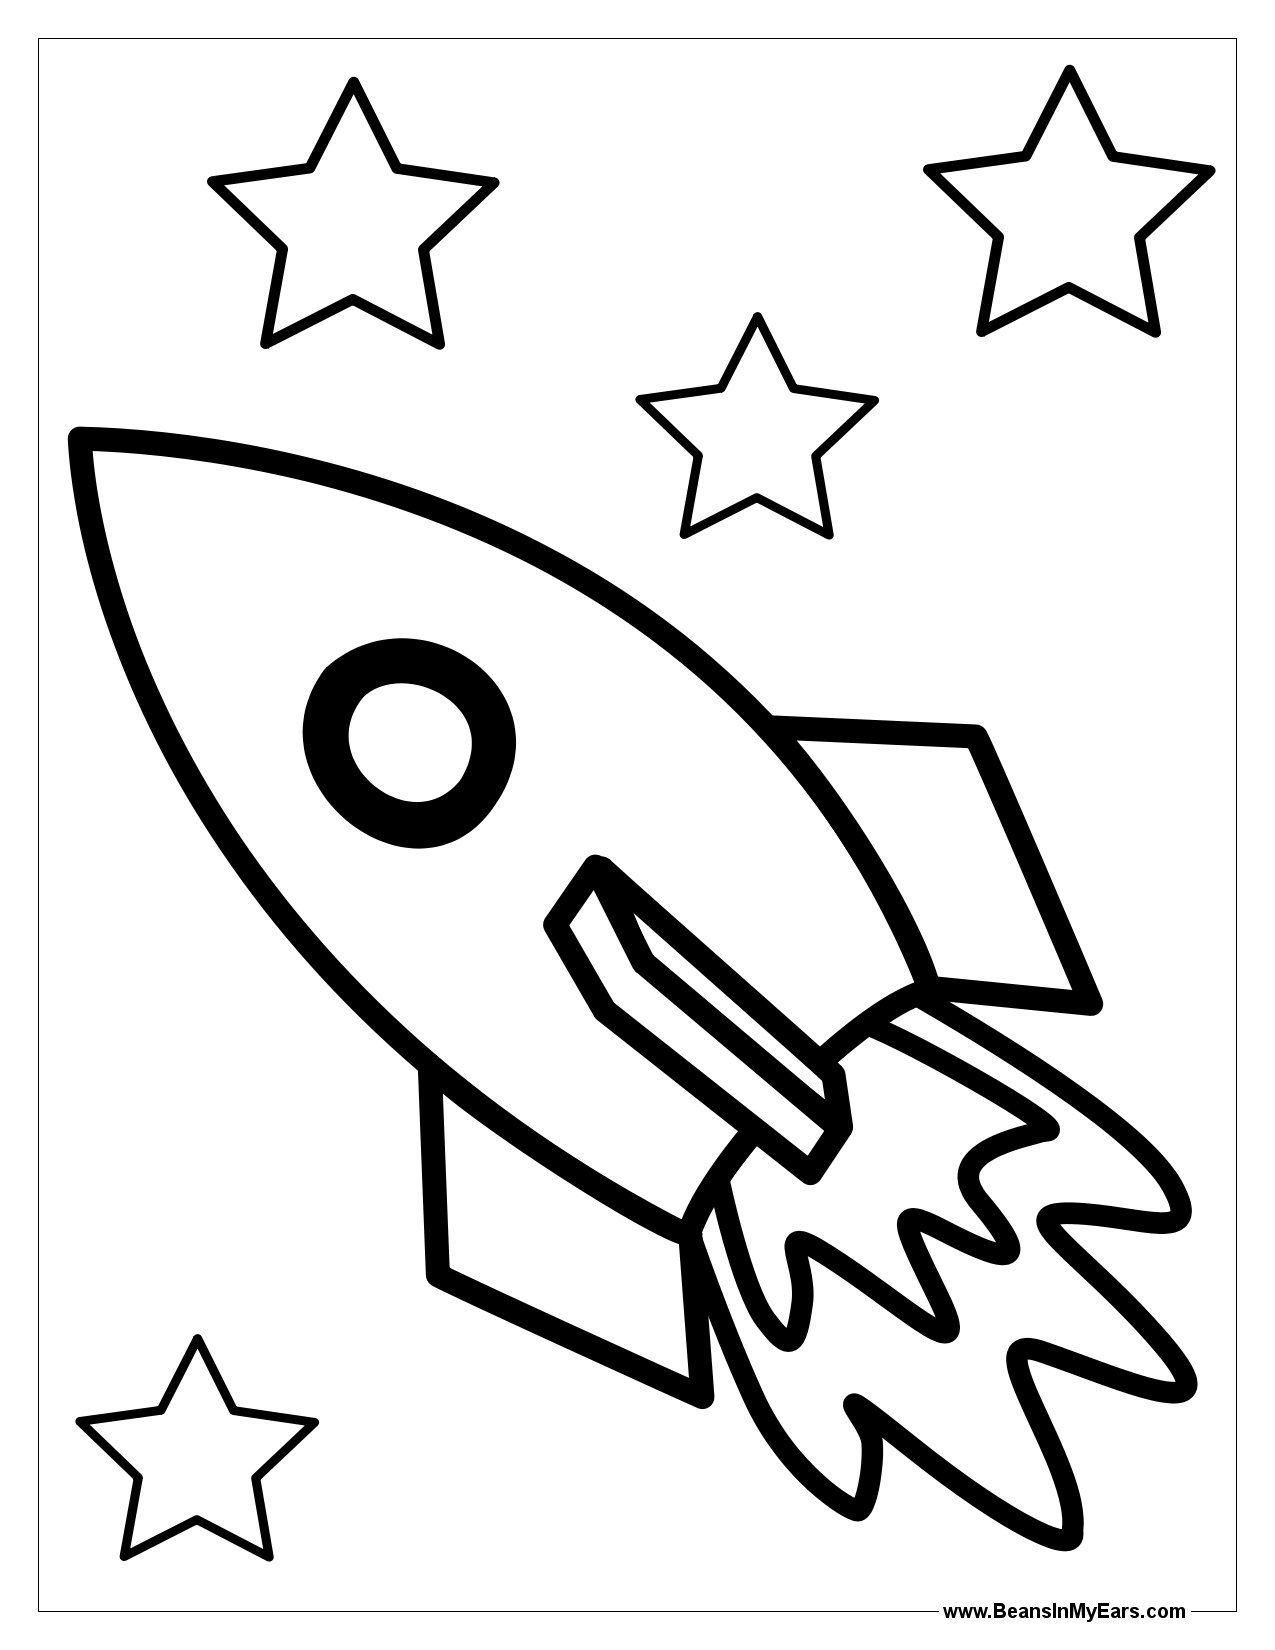 Printable Coloring Coloring Sheets Rocket Ship Coloring Pages Rocket Ship Rocket Coloring Sheet Space Coloring Pages Easy Coloring Pages